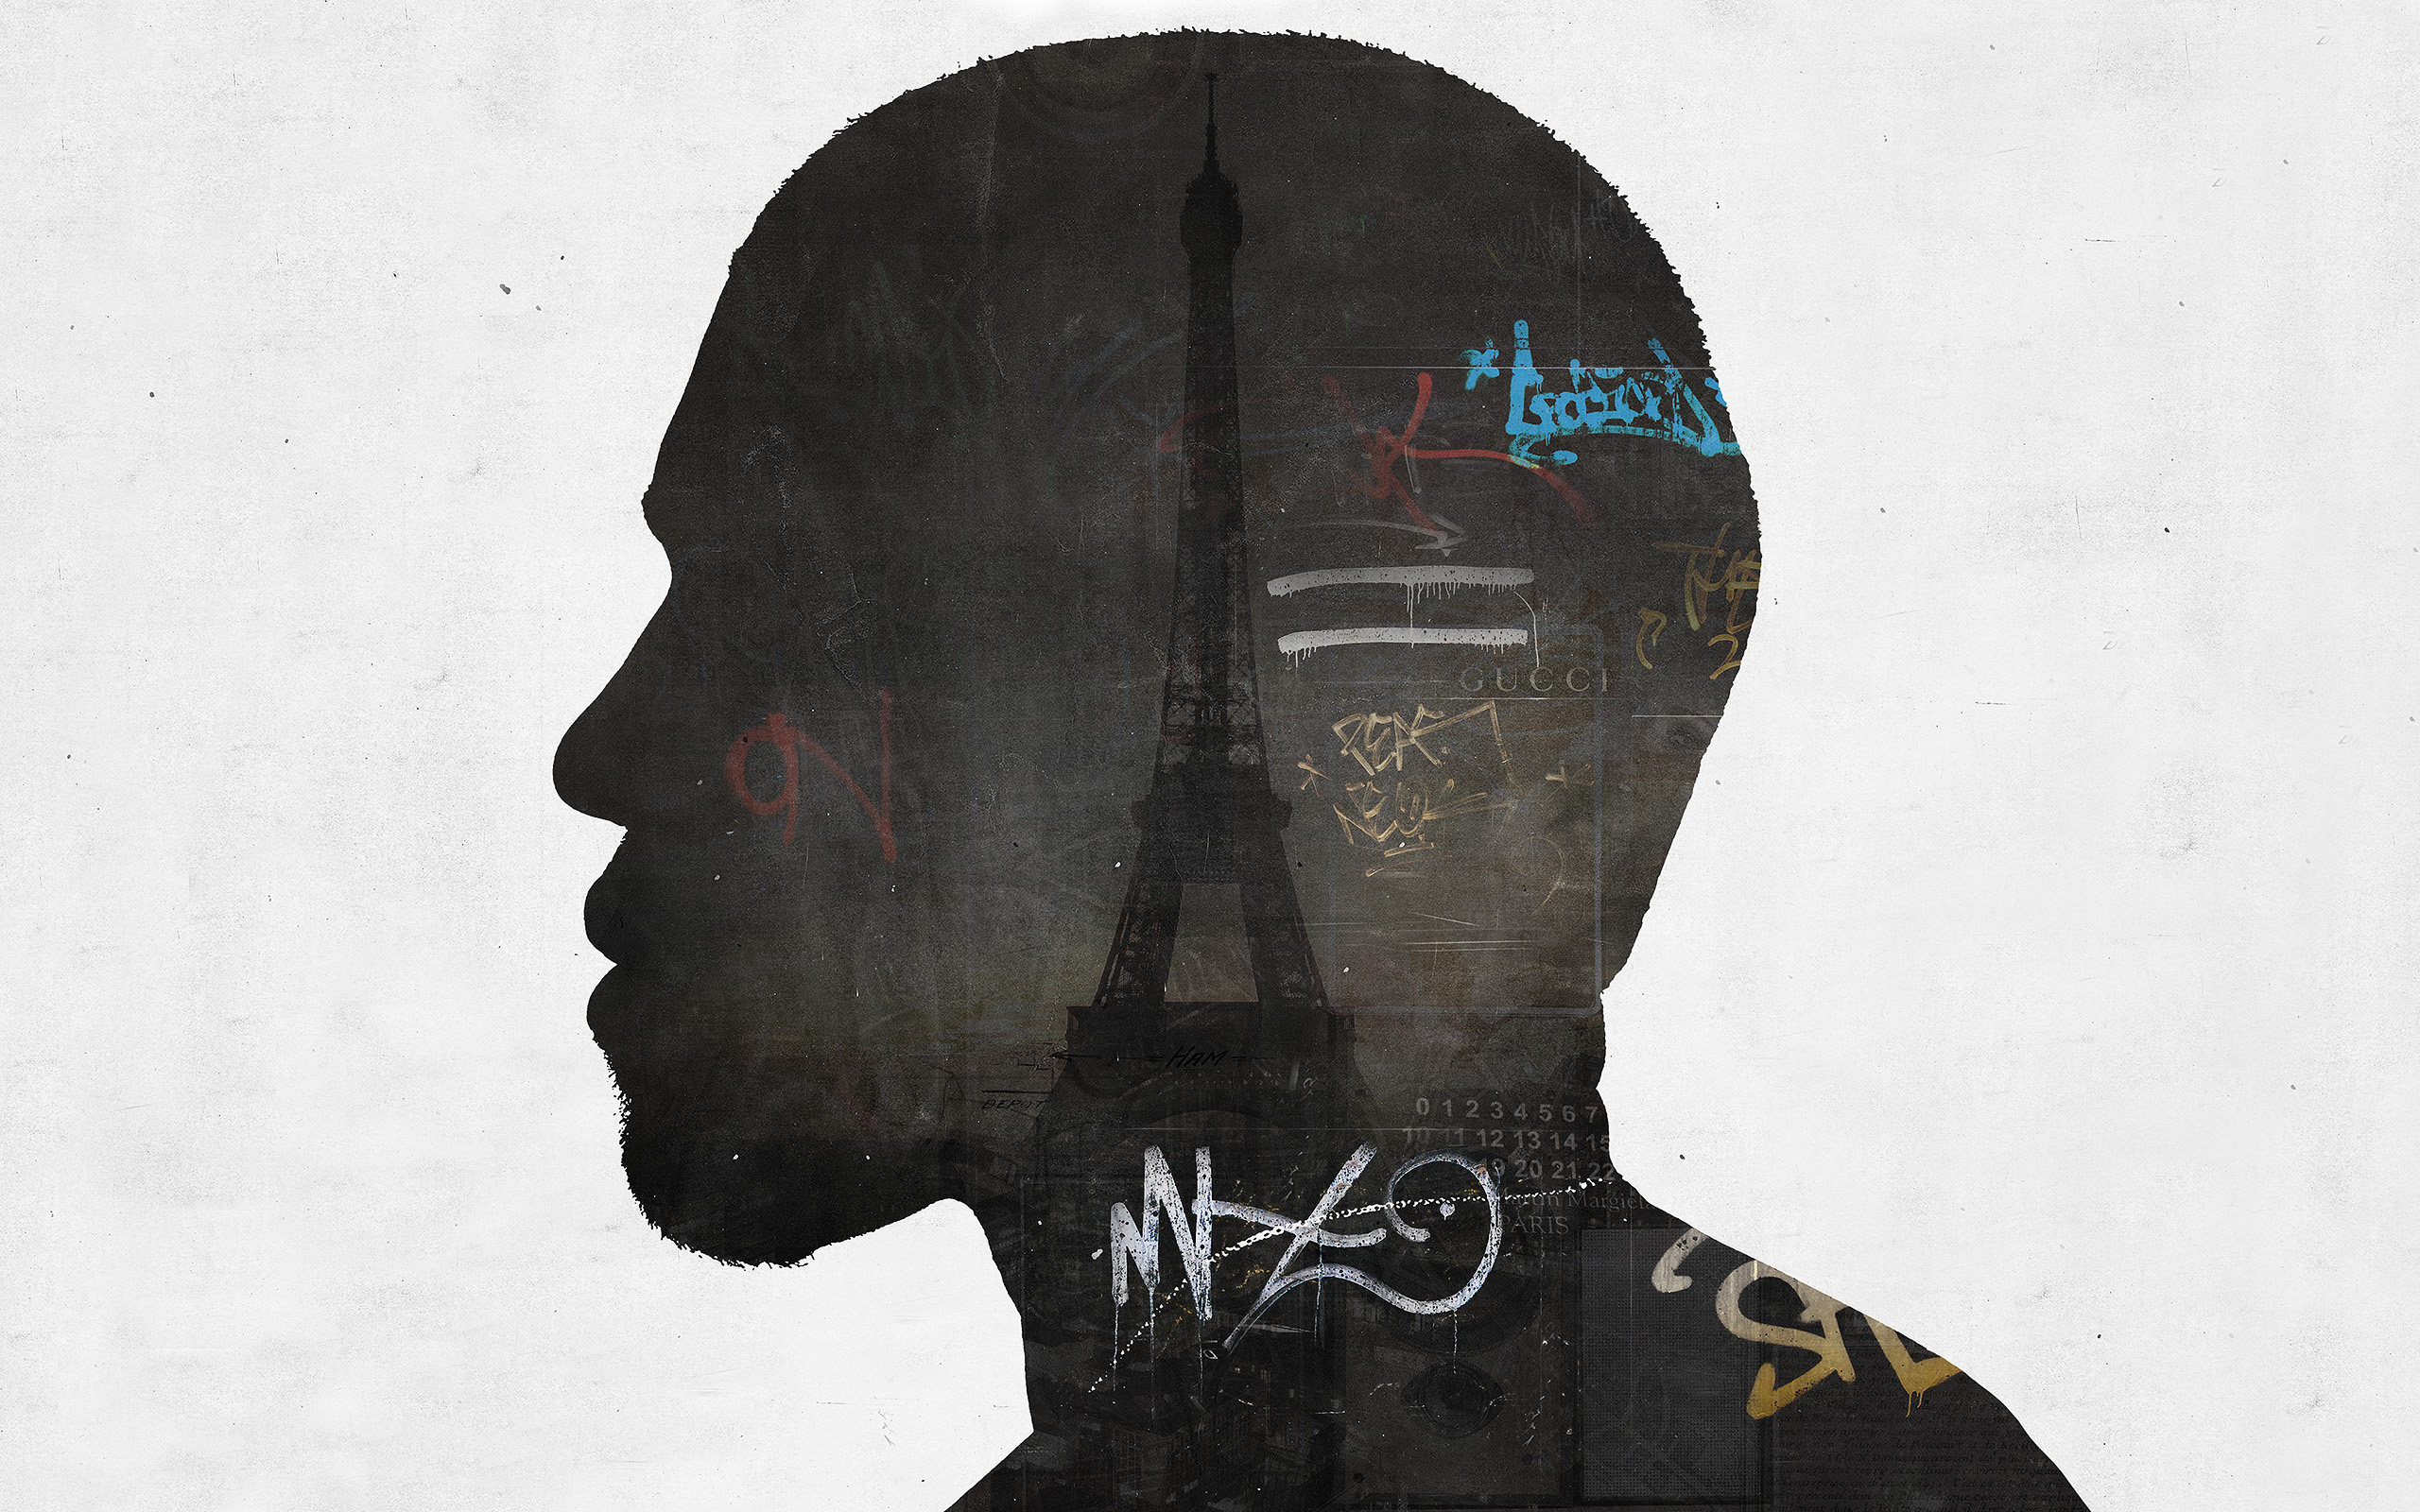 NIGGAS IN PARIS (Kanye West) by axcy